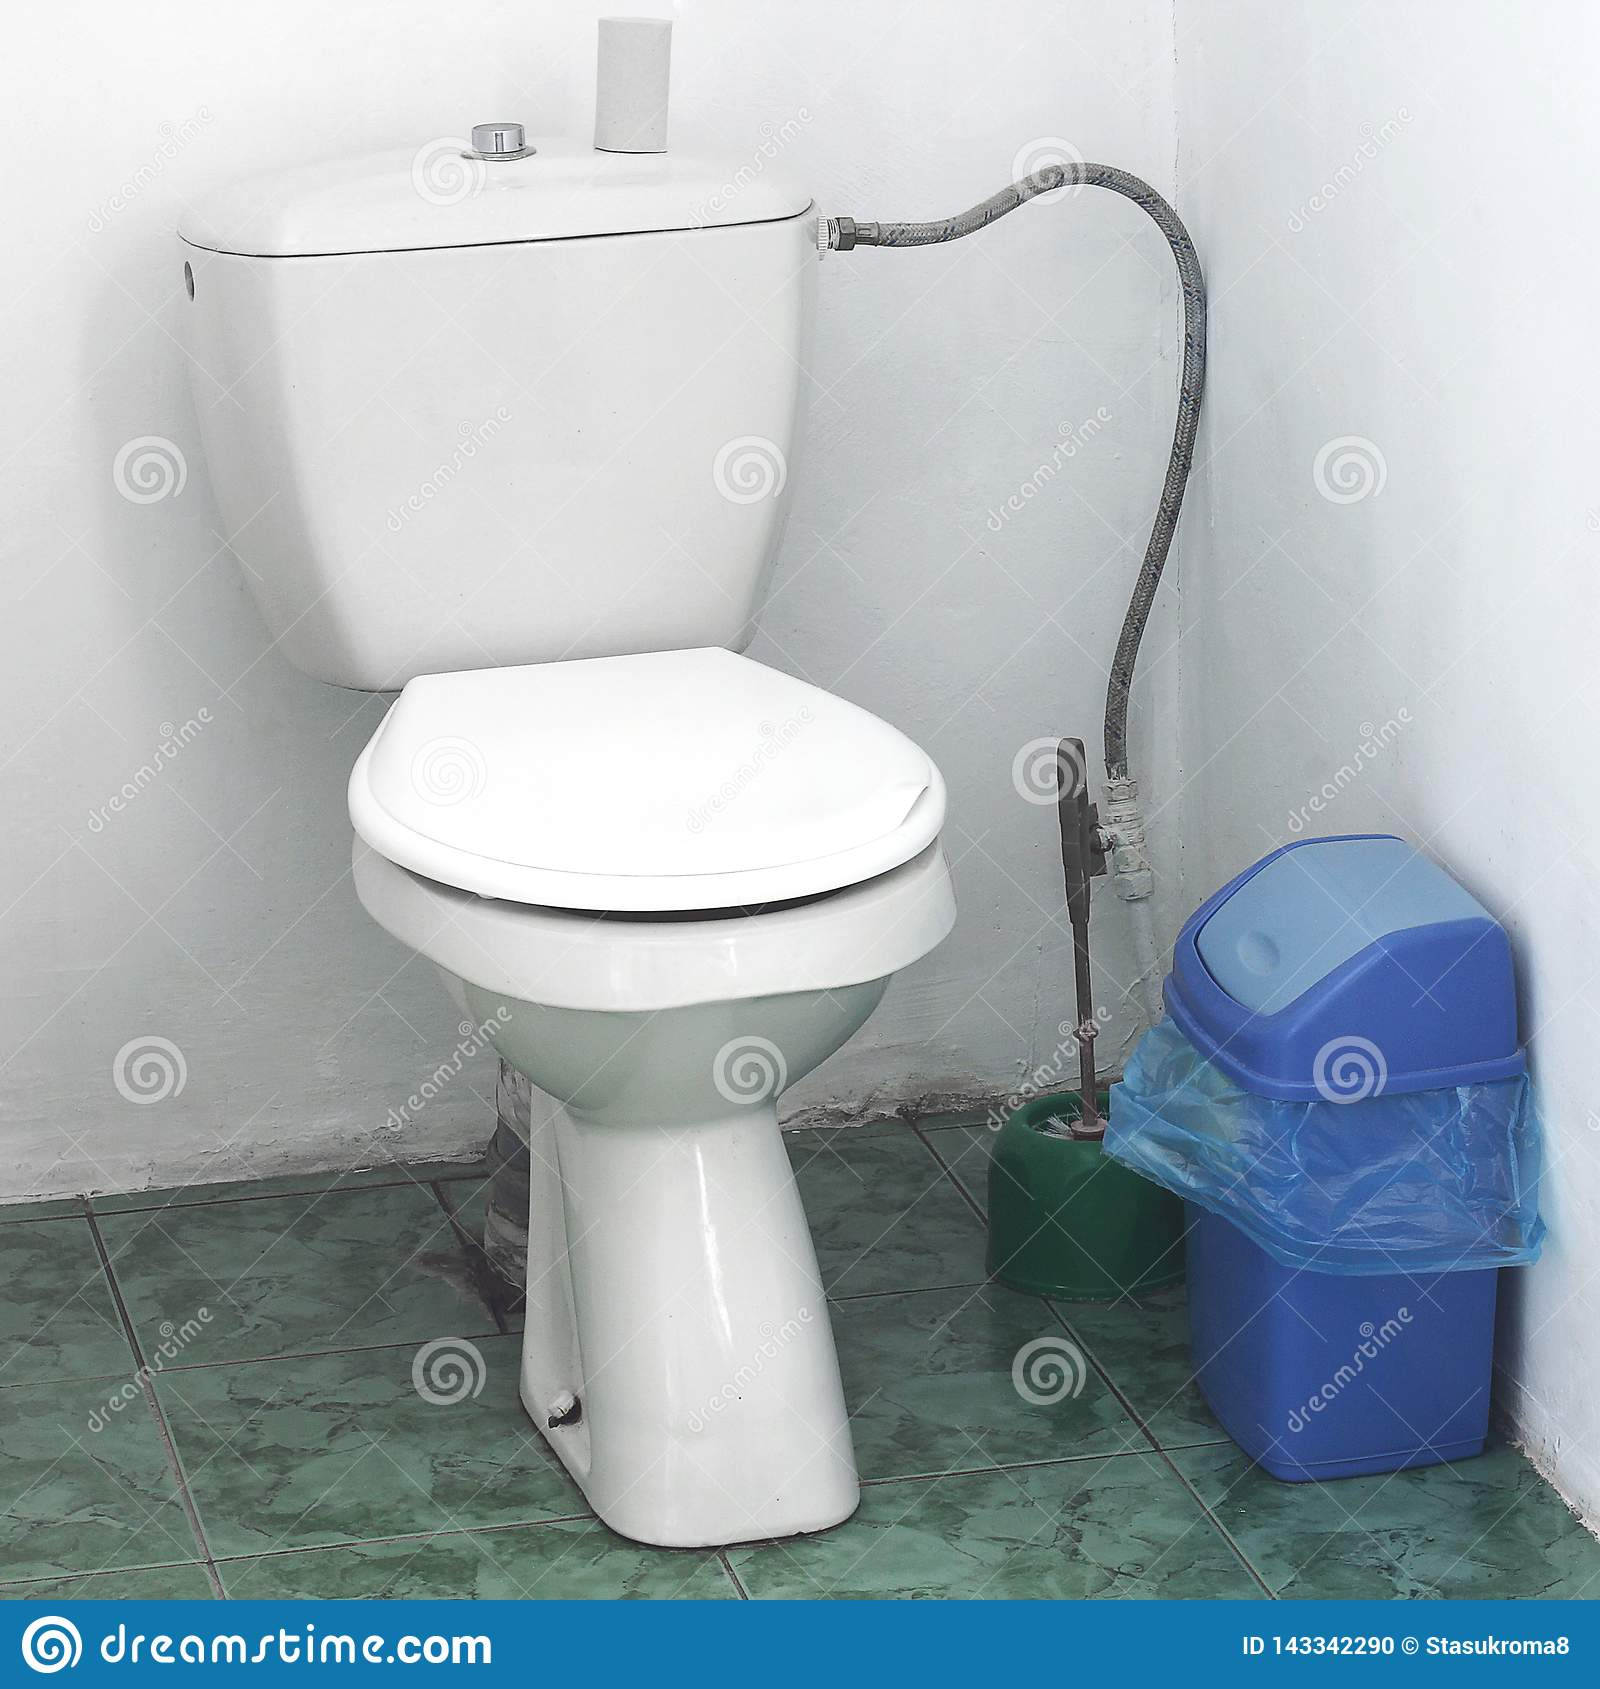 Toilet in the house. Restroom